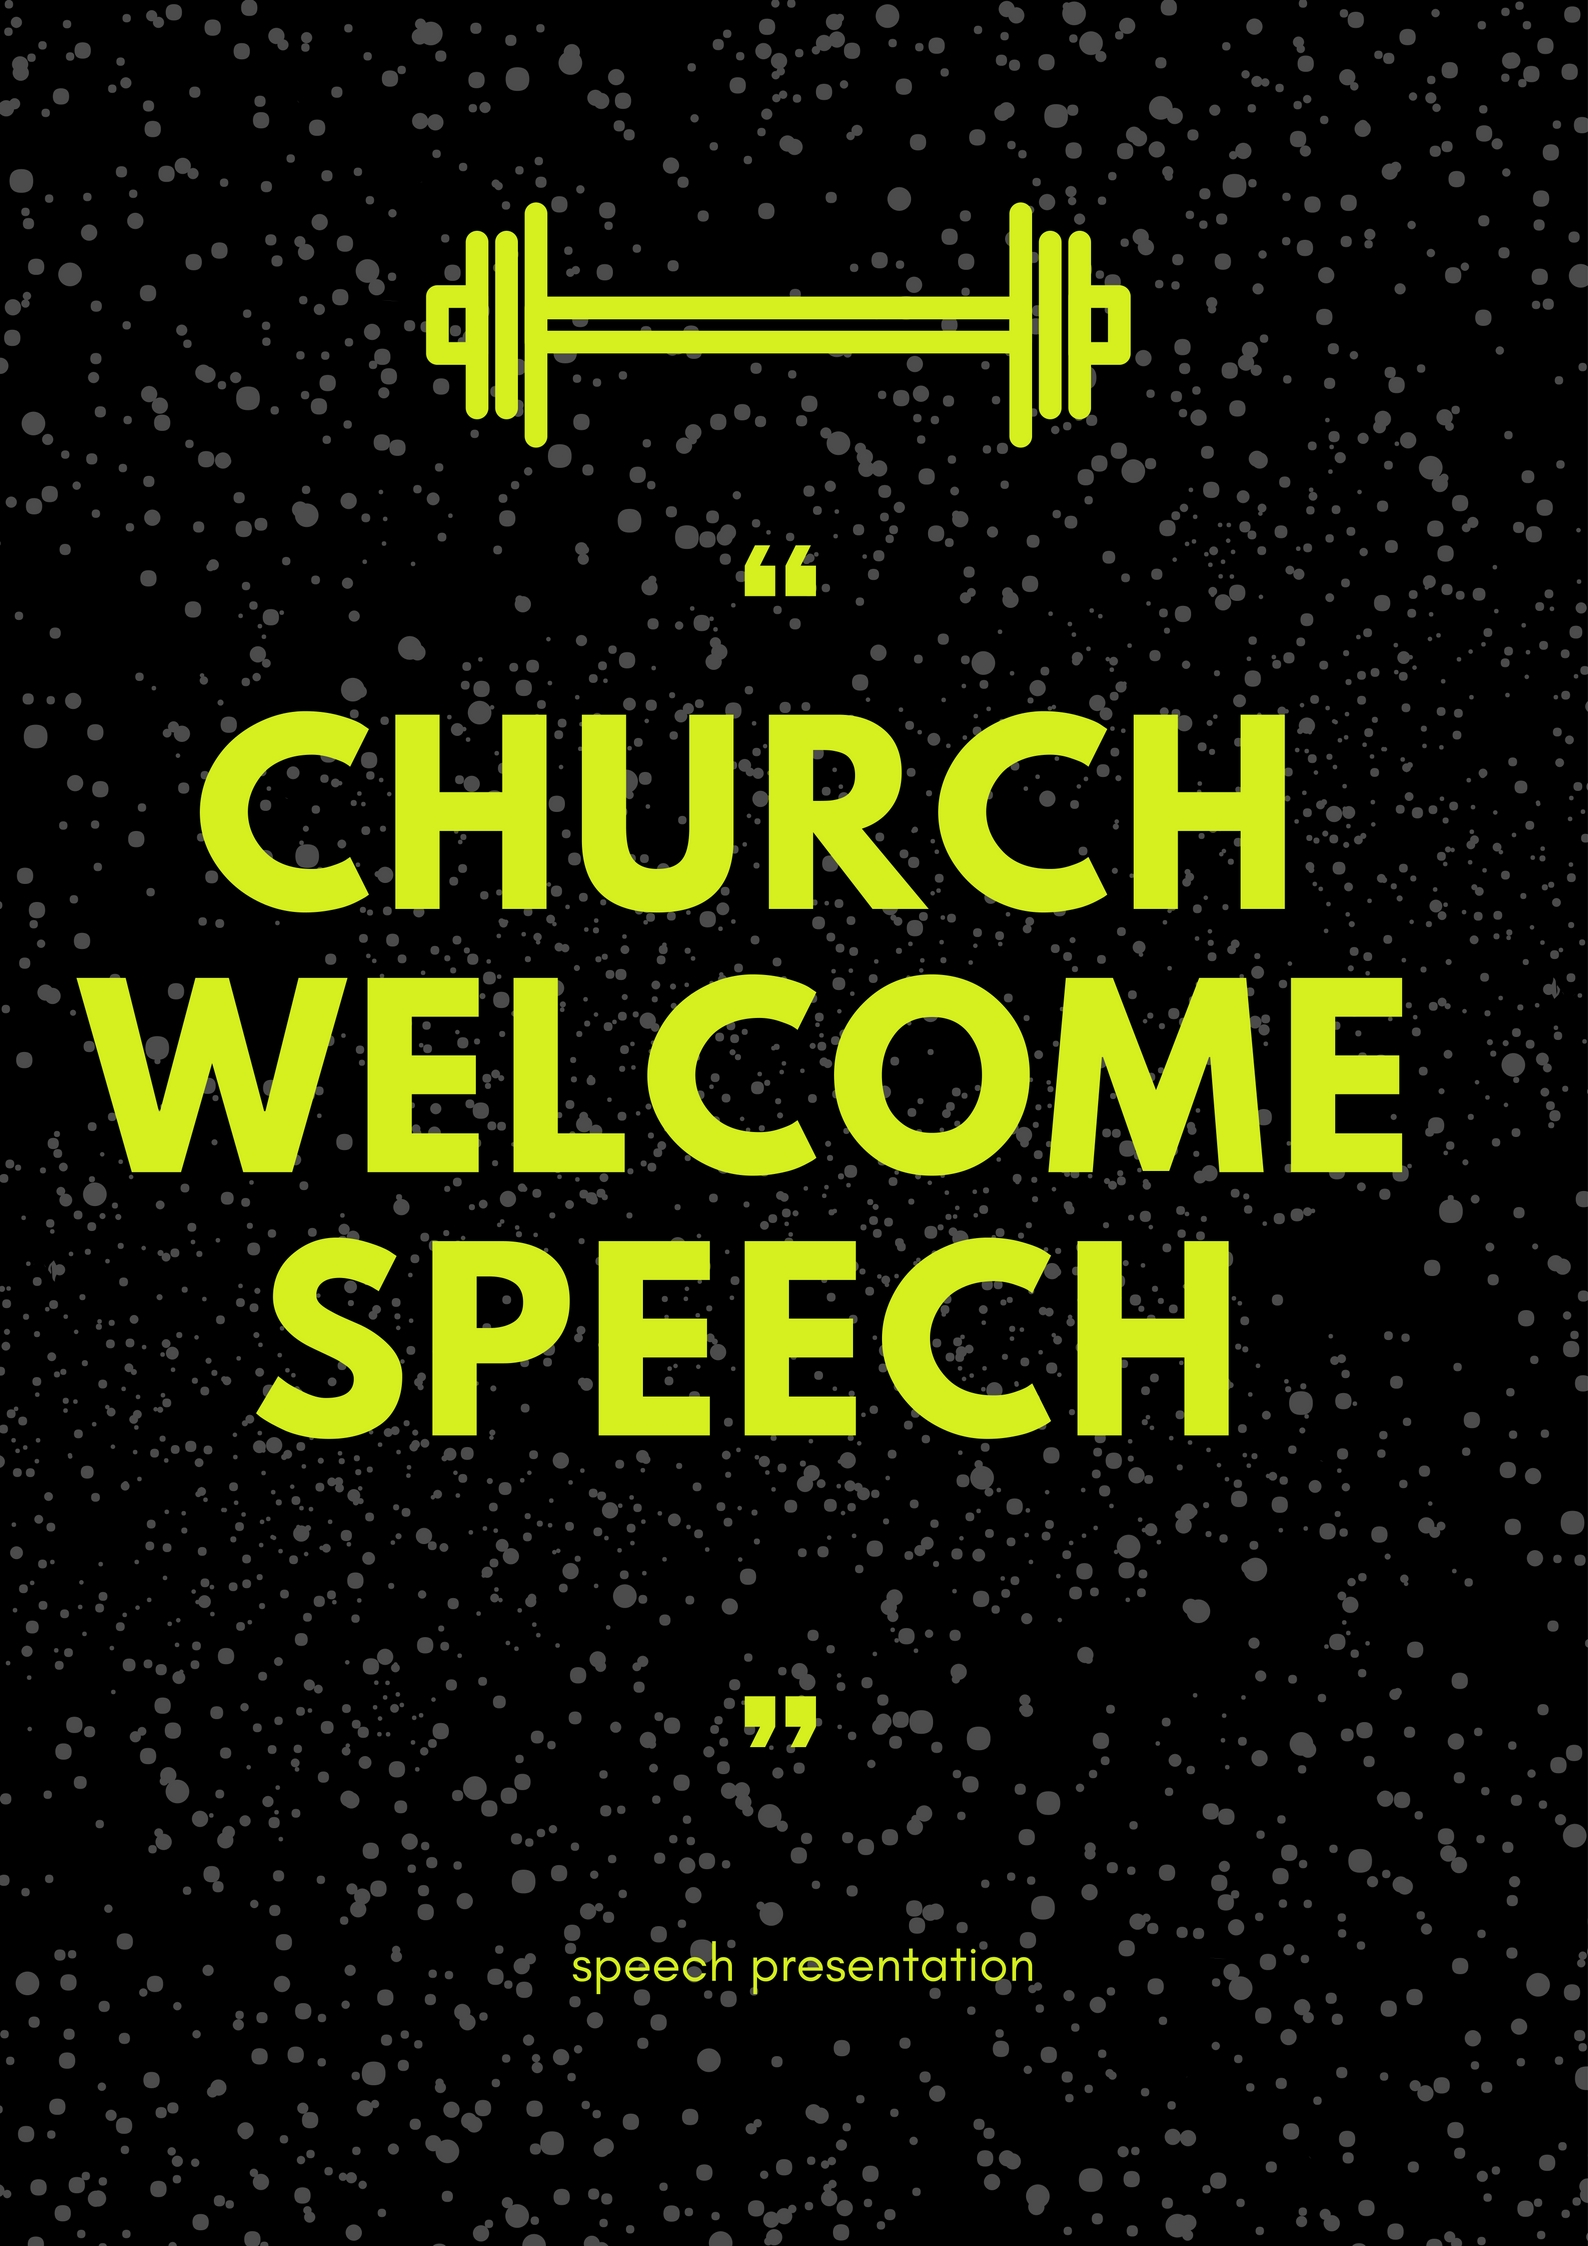 Church welcome speech sample church welcome speech sample thecheapjerseys Images